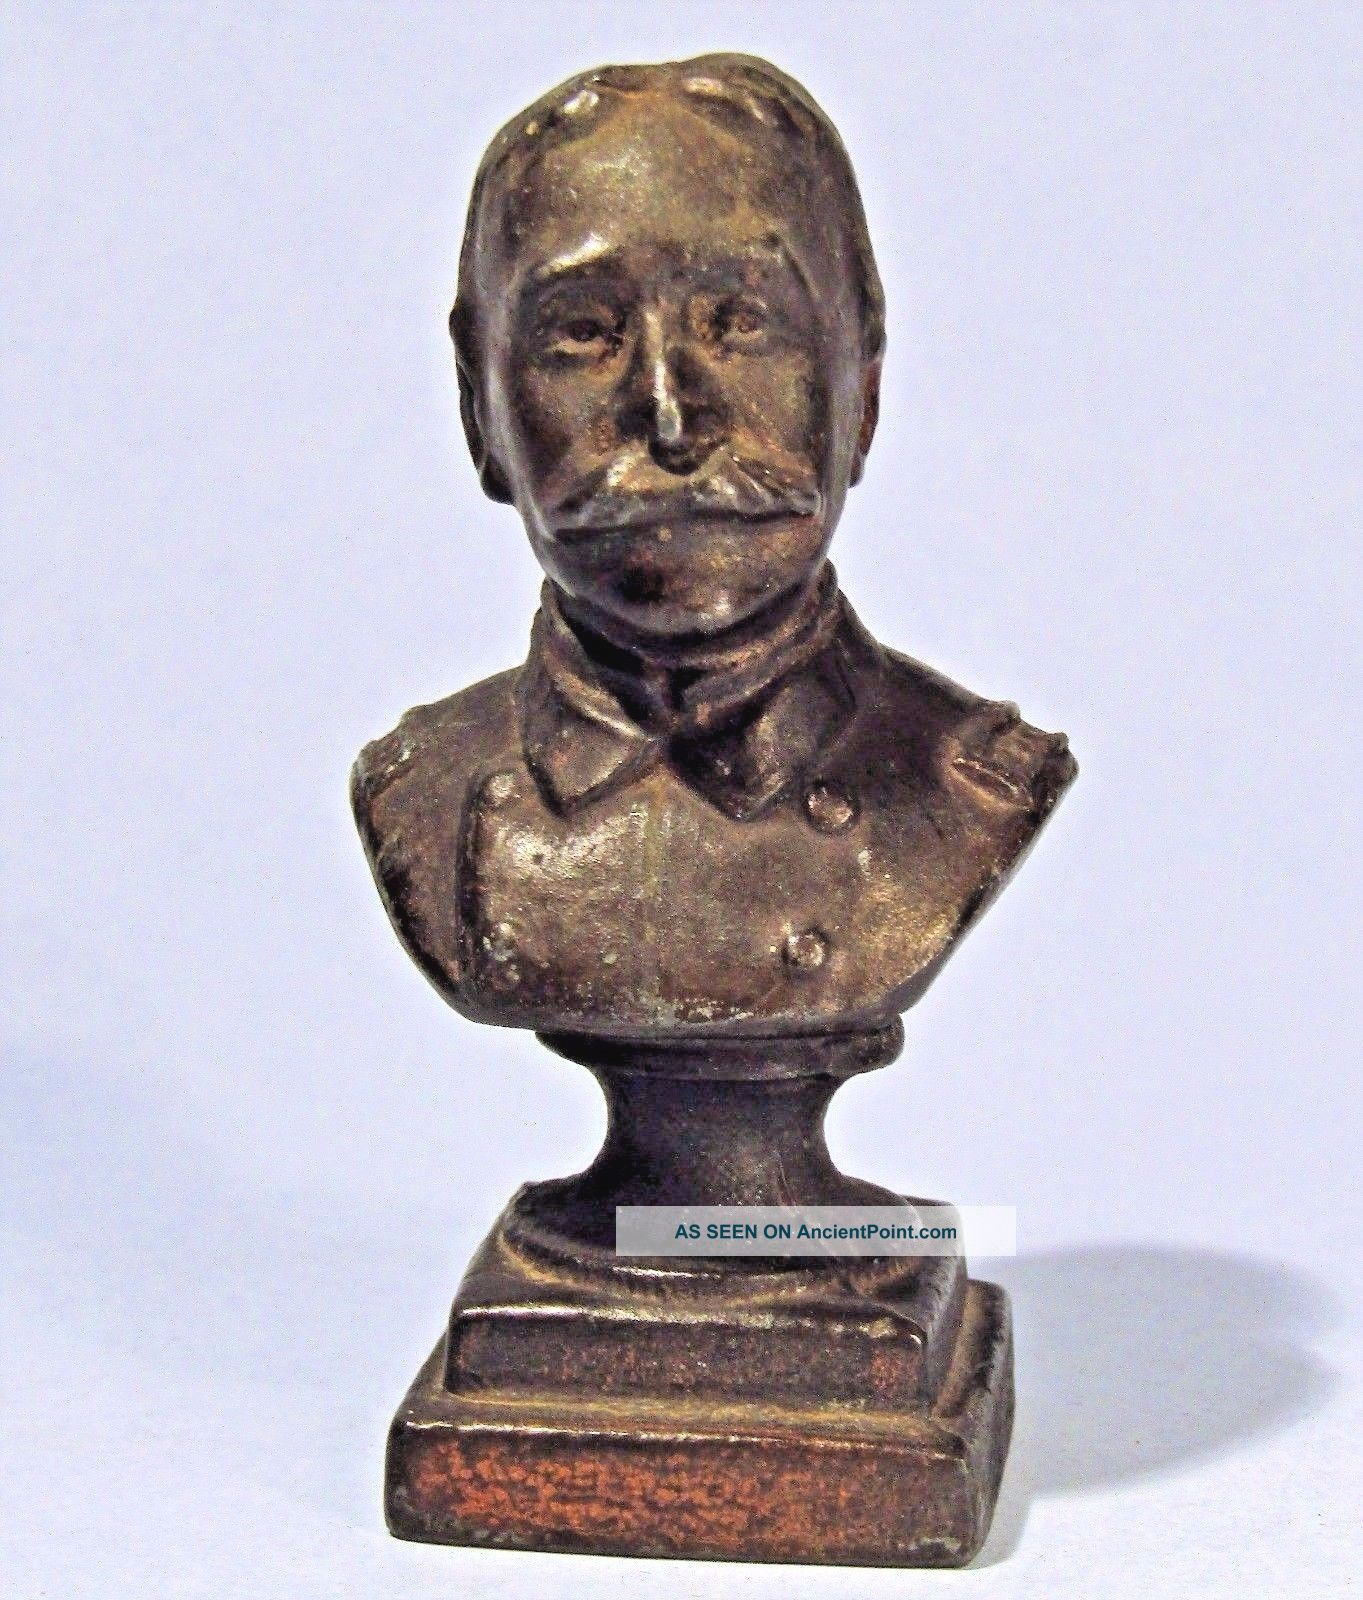 Admiral George Dewey Antique Miniature Metal Bust Spanish American War Hero Metalware photo